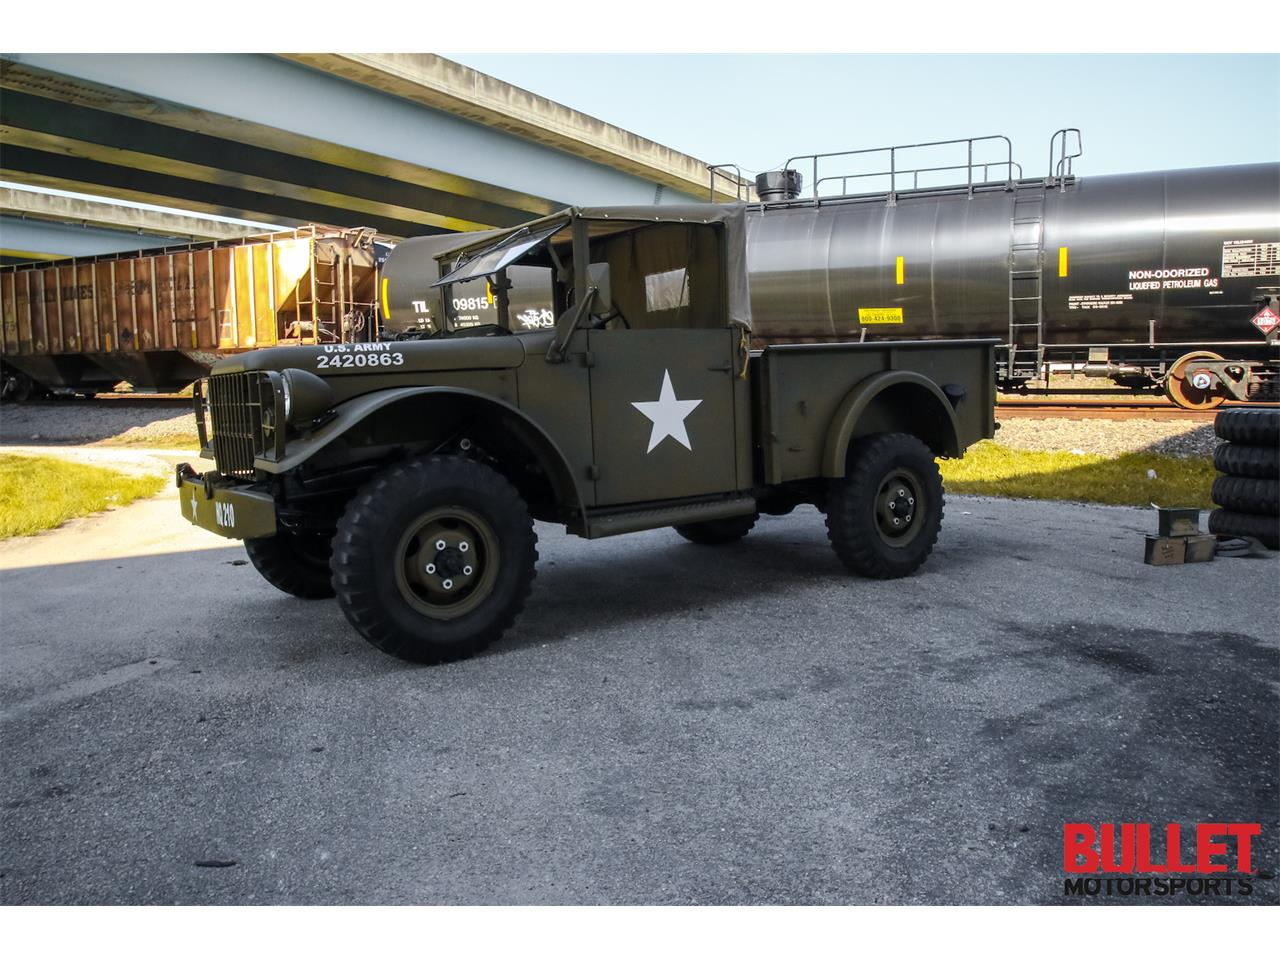 For Sale: 1952 Dodge M37 in Fort Lauderdale, Florida